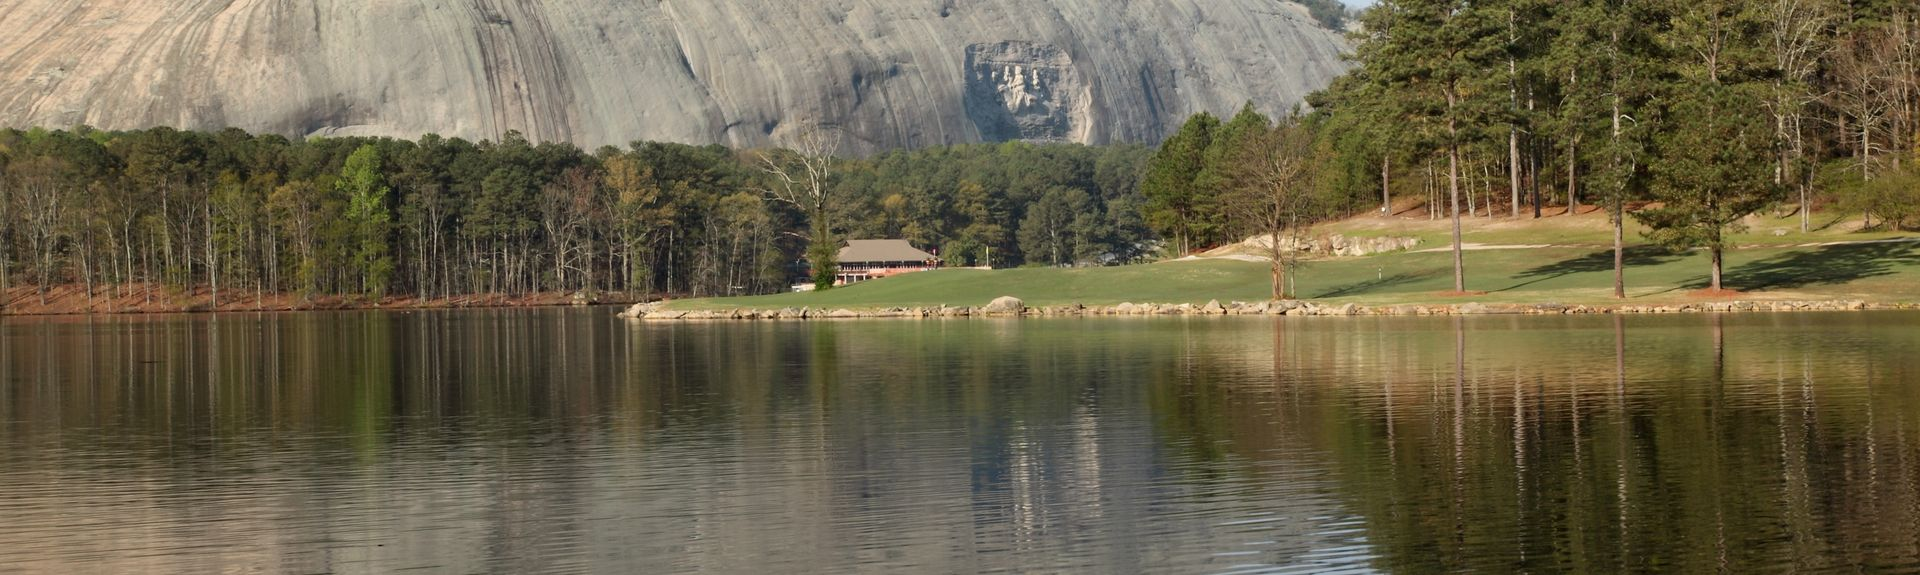 Stone Mountain State Park, Traphill, Carolina do Norte, Estados Unidos